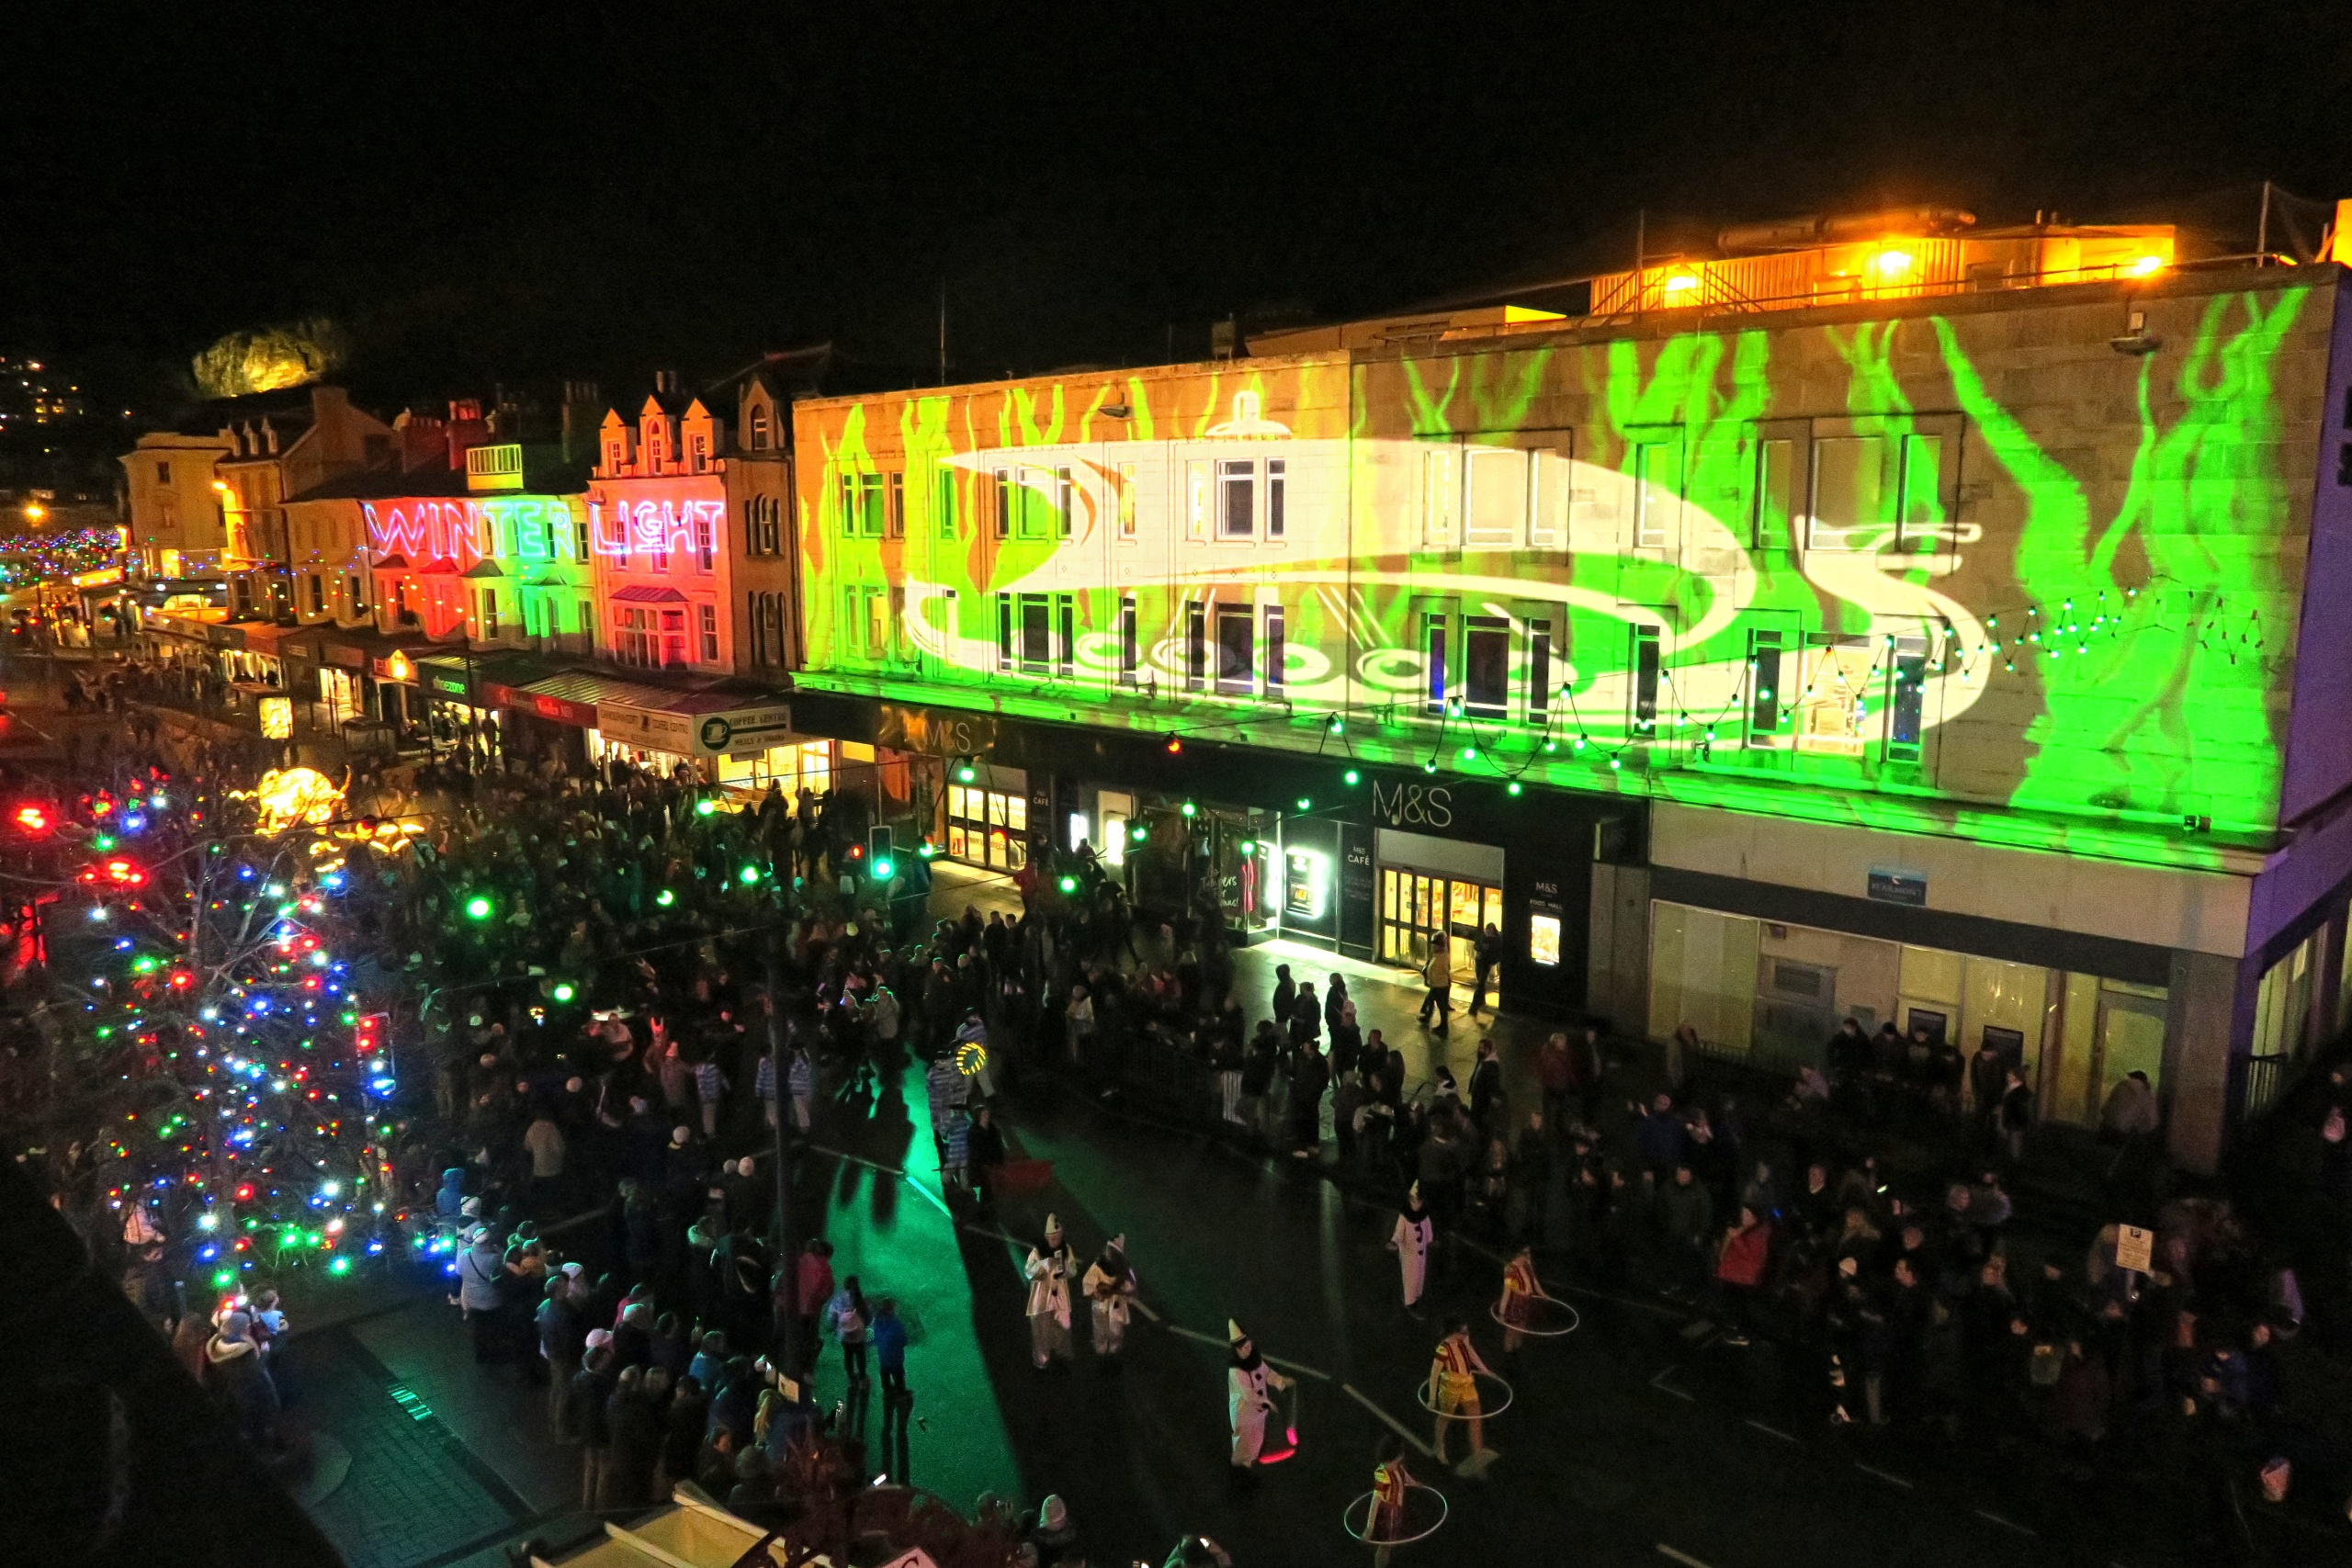 Outdoor projection mapping on to buildings at the Llandudno Winter Light / Golau Gaeaf event, in North Wales. To complement the parade, the wall above Marks & Spencer on Mostyn Street is illuminated by edge blended projectors, from the Library and Victoria Shopping Centre opposite.